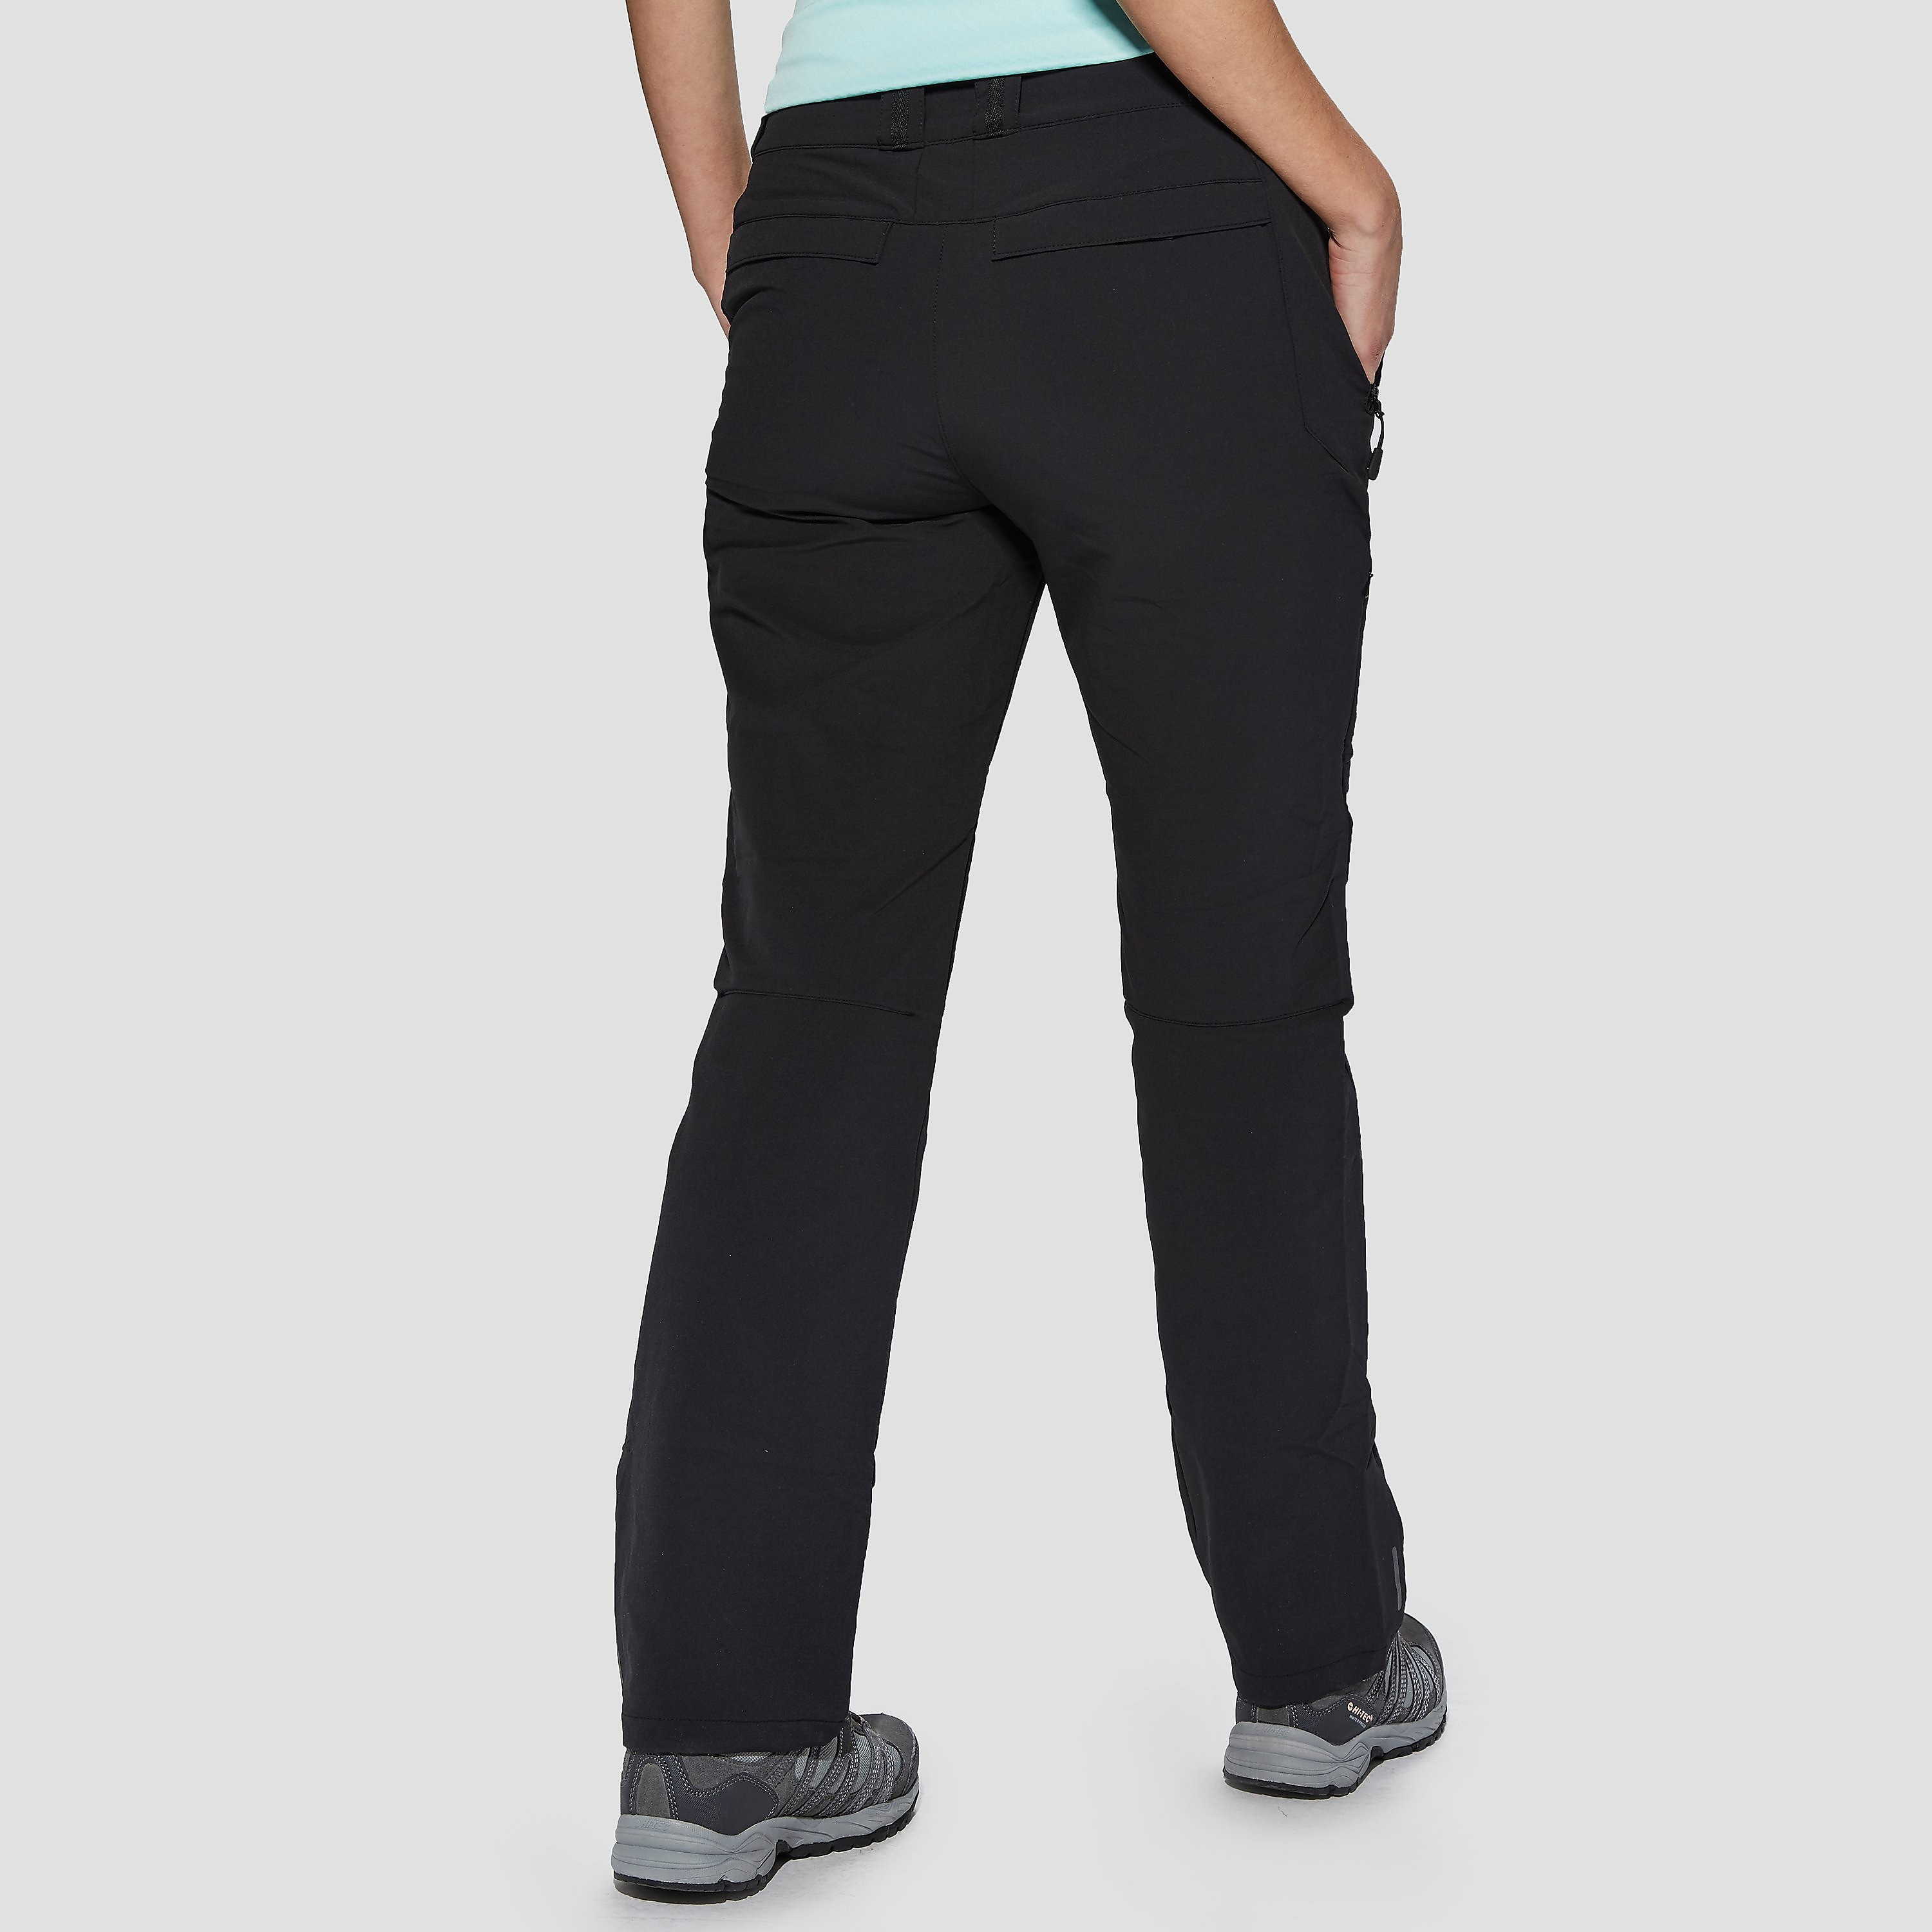 Jack Wolfskin  Activate Thermic Women's Pants